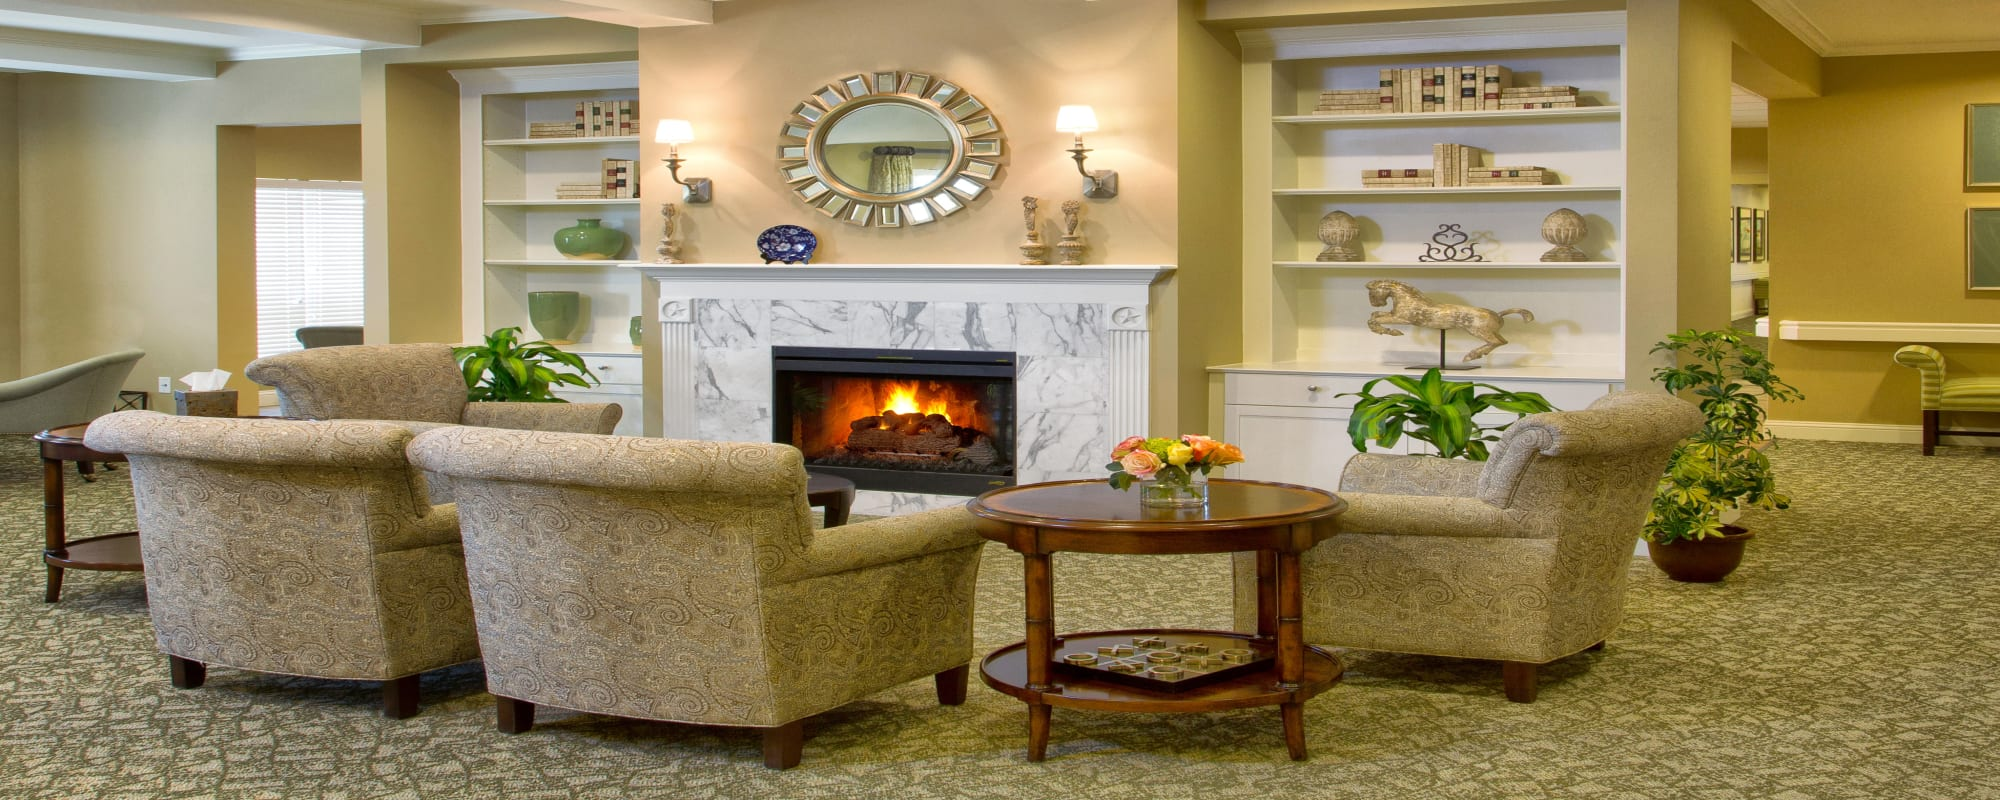 Autumn Grove Cottage at Katy - Live Life Well TV